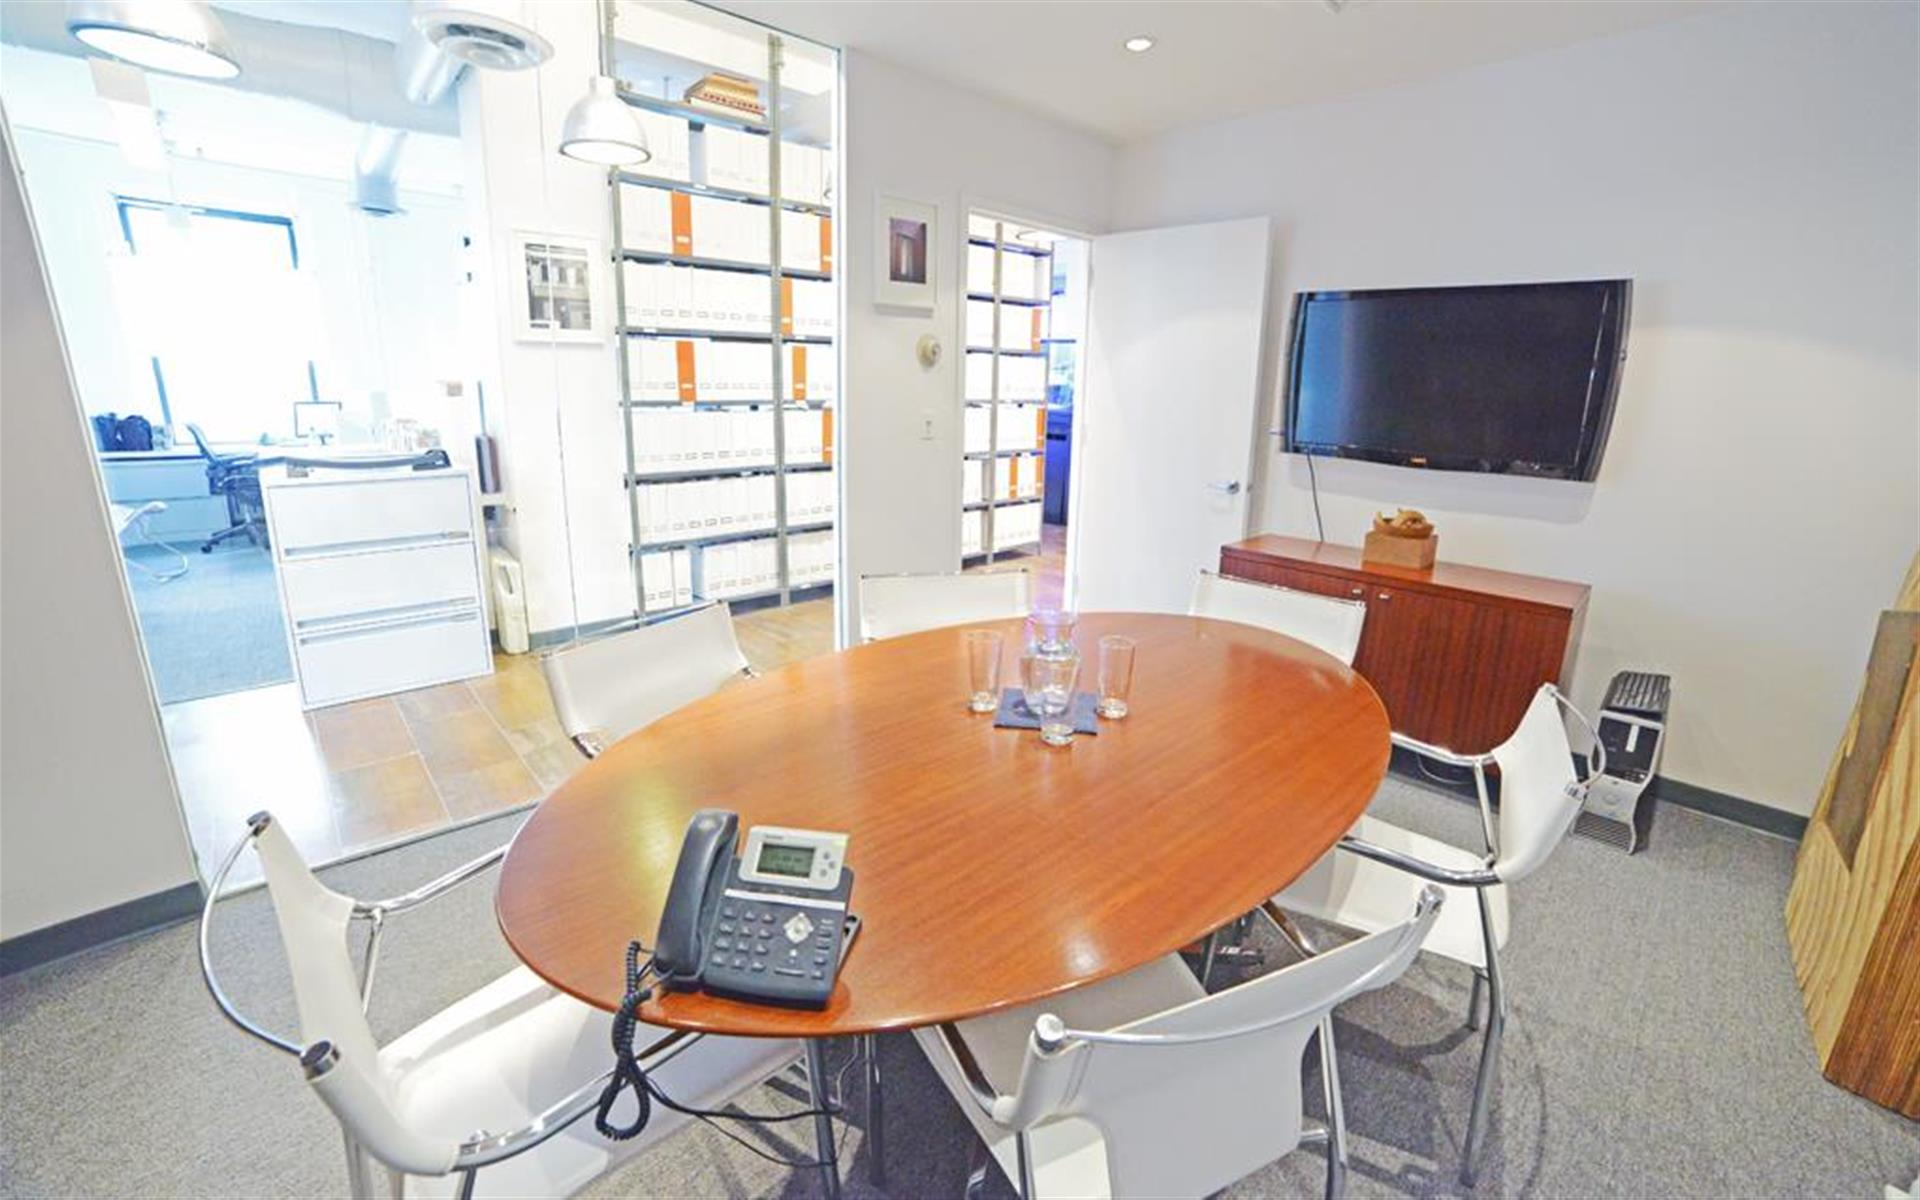 caseworks - Union Square, NYC - 5th Avenue Conference Room